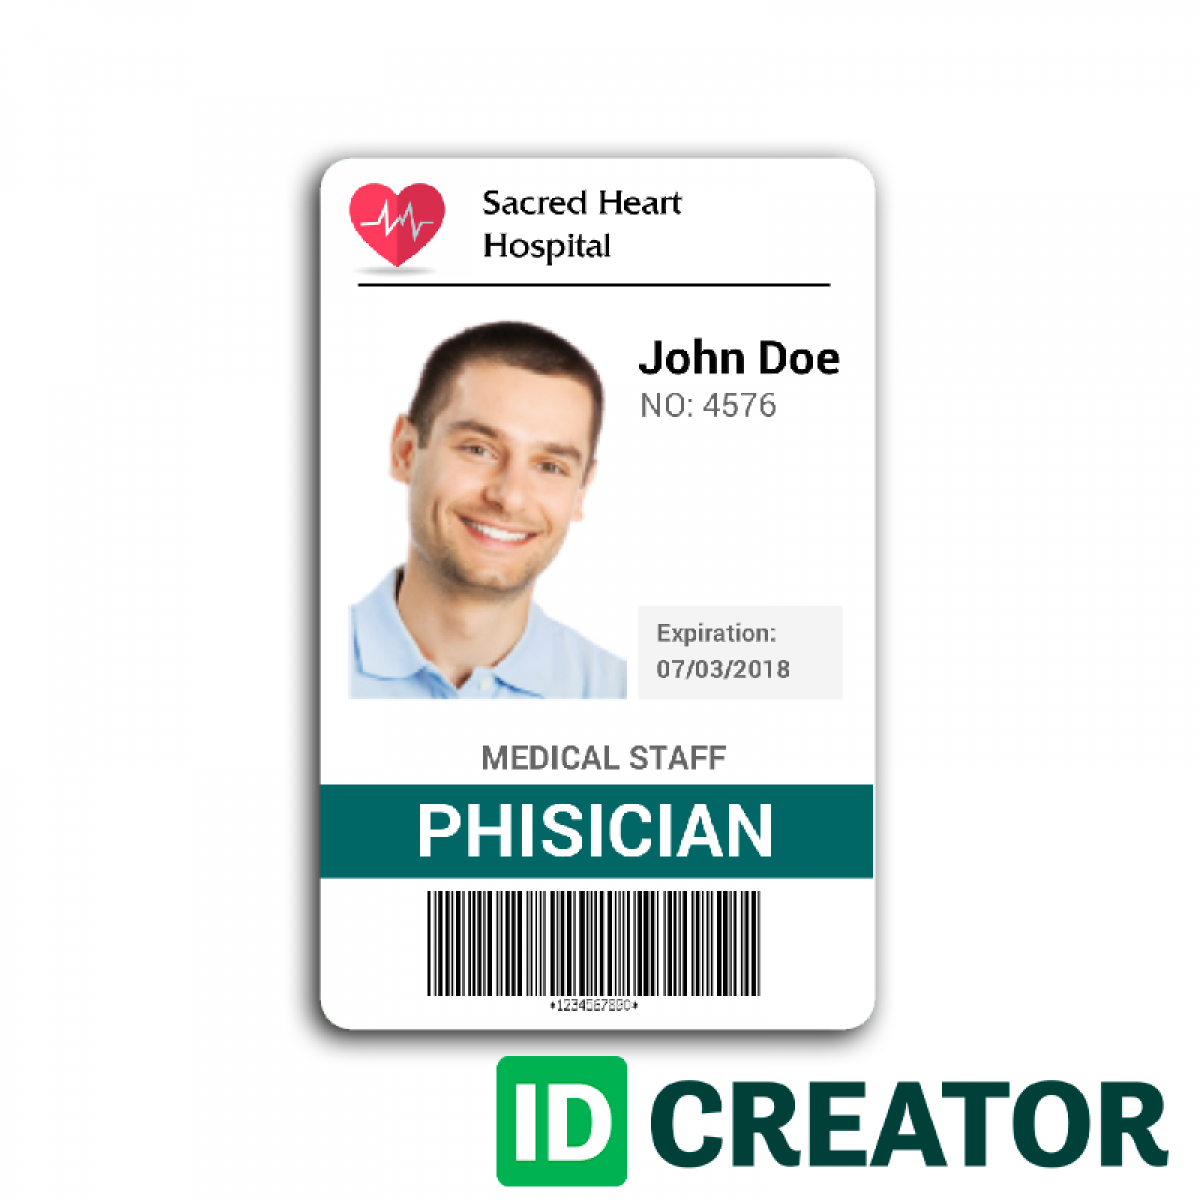 Doctor Id Card #2 | Wit Research | Id Card Template With Regard To Hospital Id Card Template